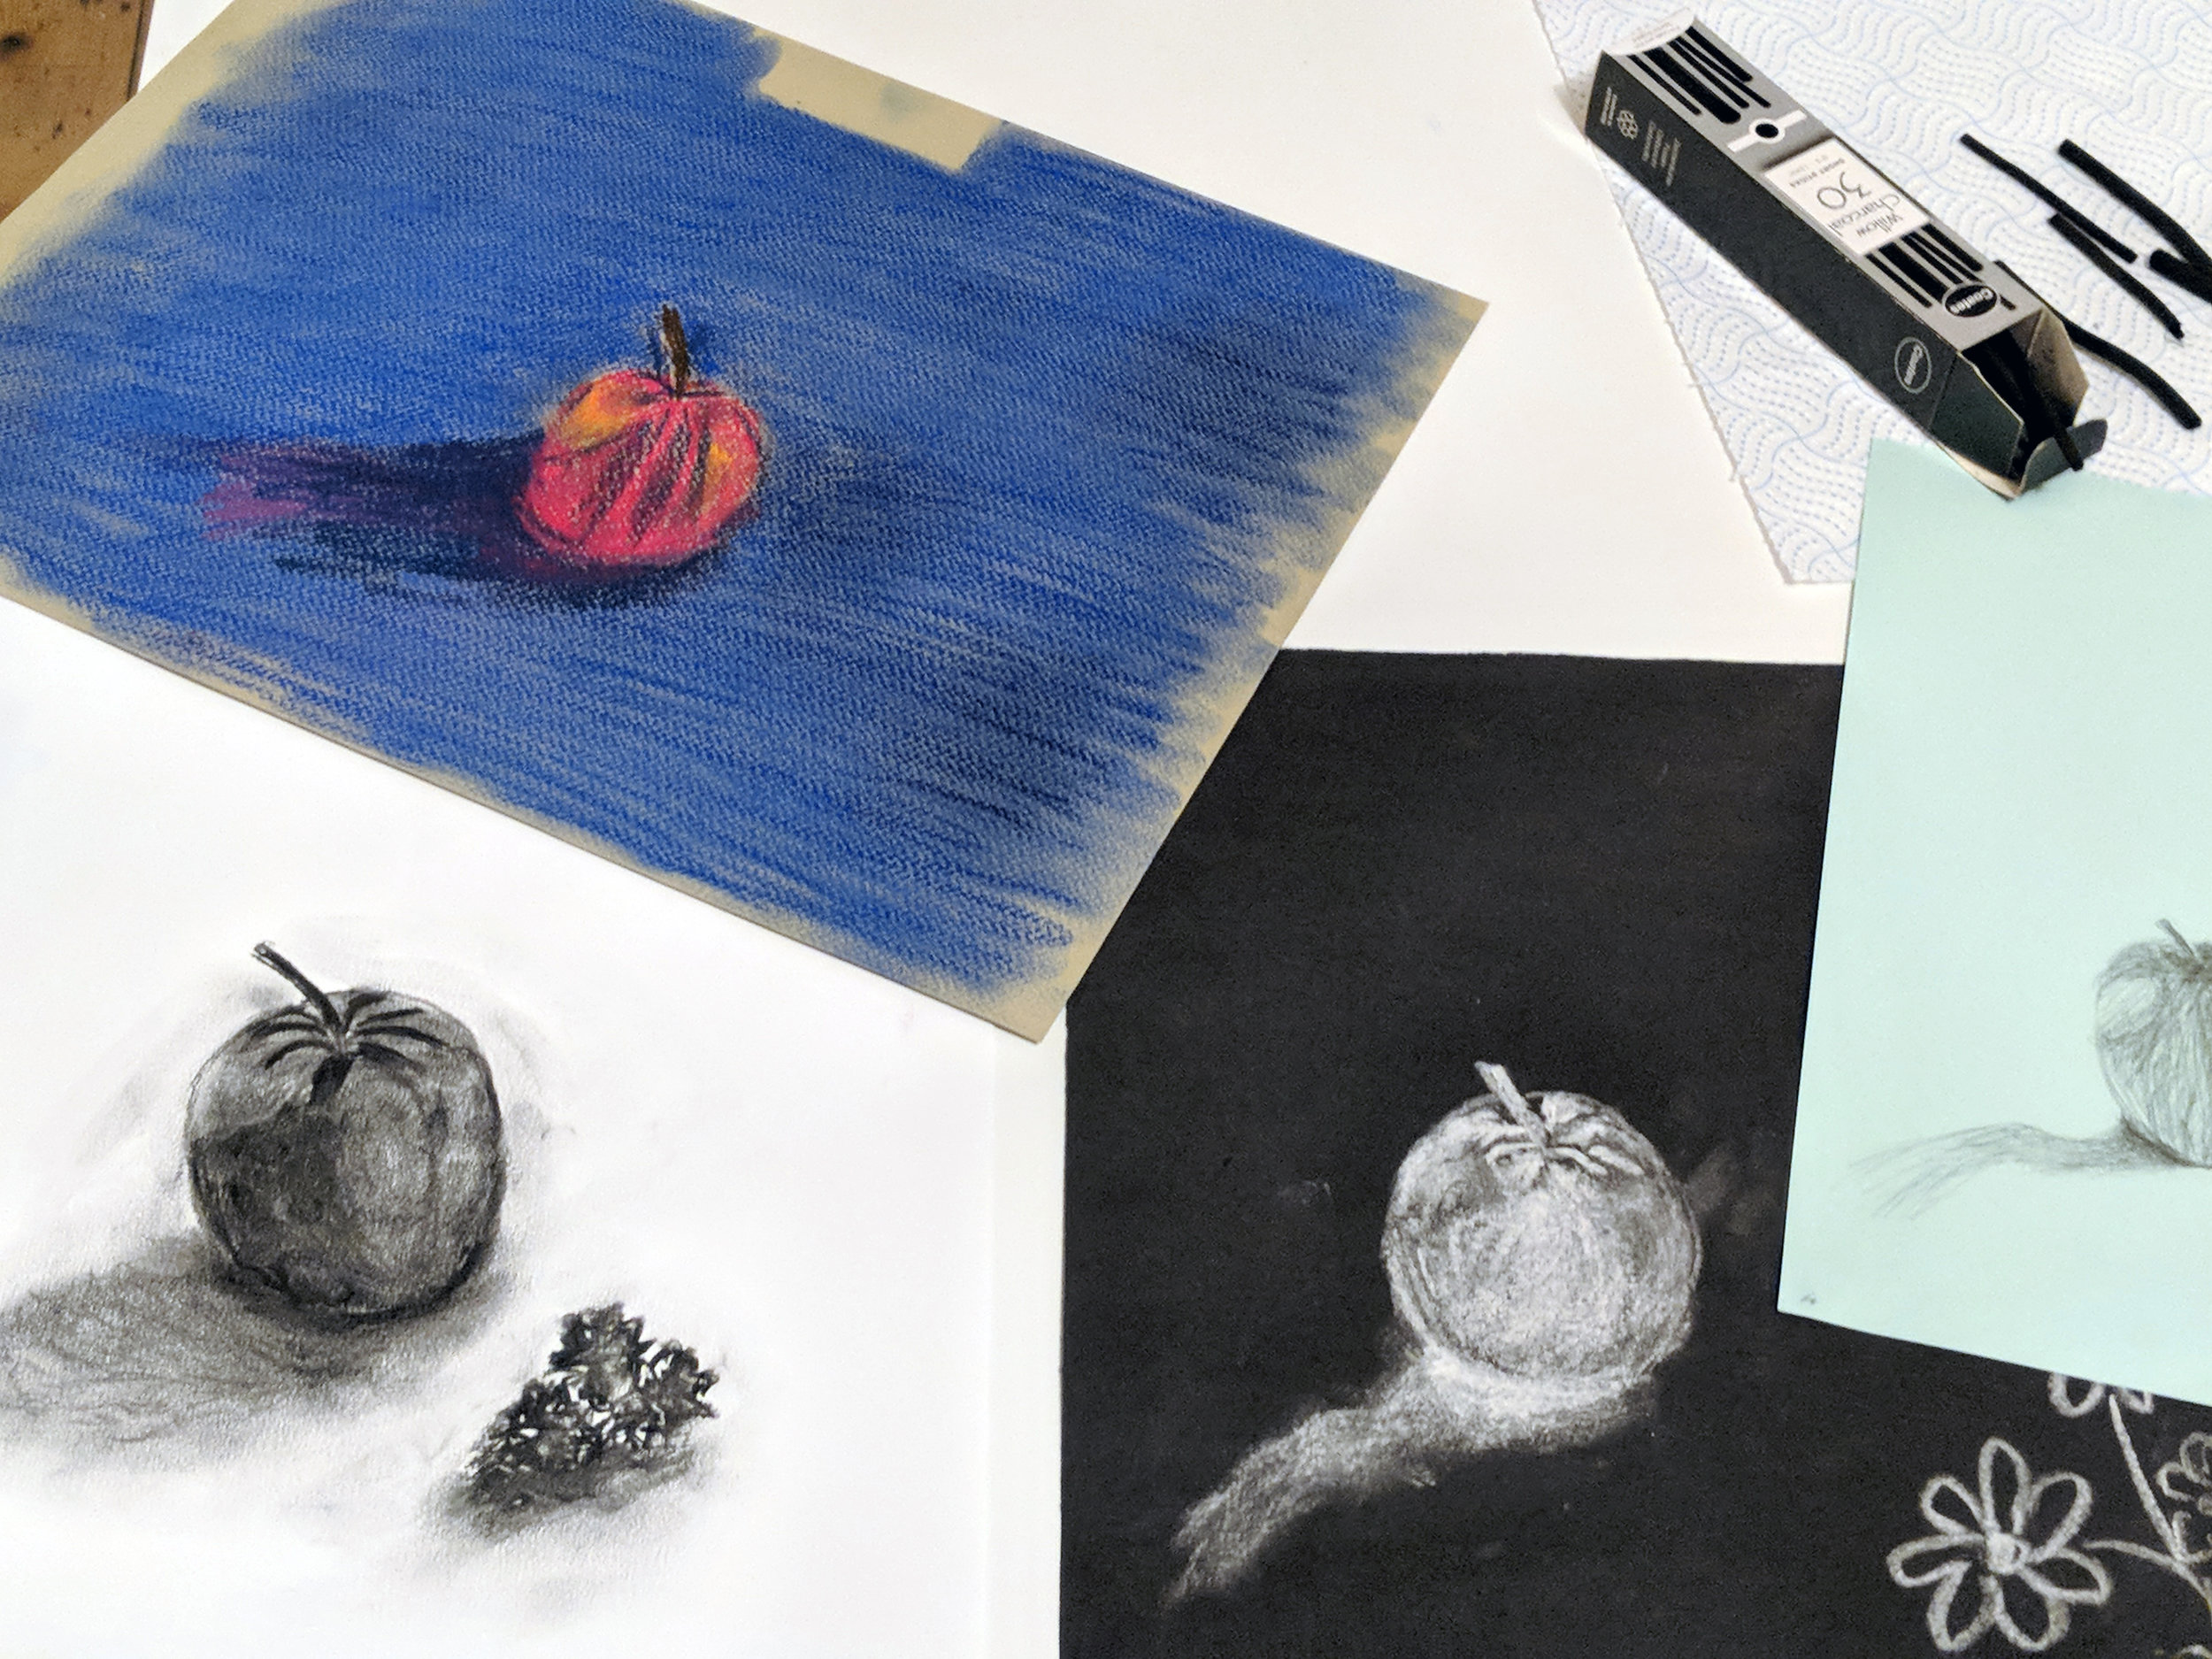 Still life work from the Pastels & Pencils Workshop